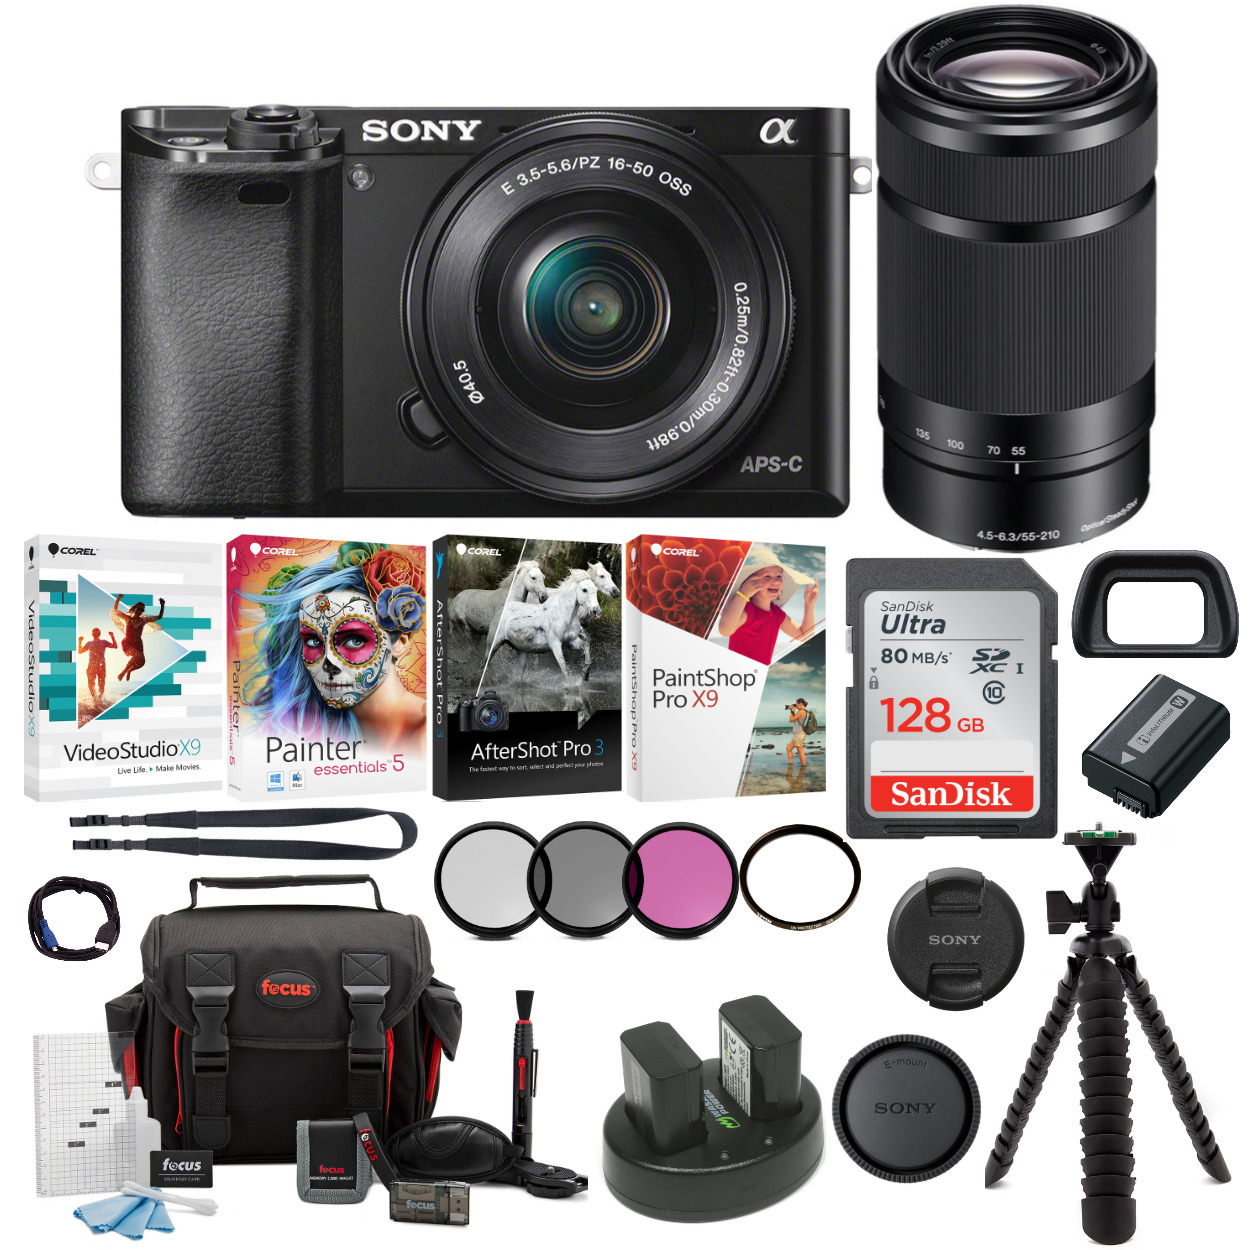 Sony Alpha a6000 Mirrorless Camera (Black) with 16-50mm and 55-210mm Lens Bundle